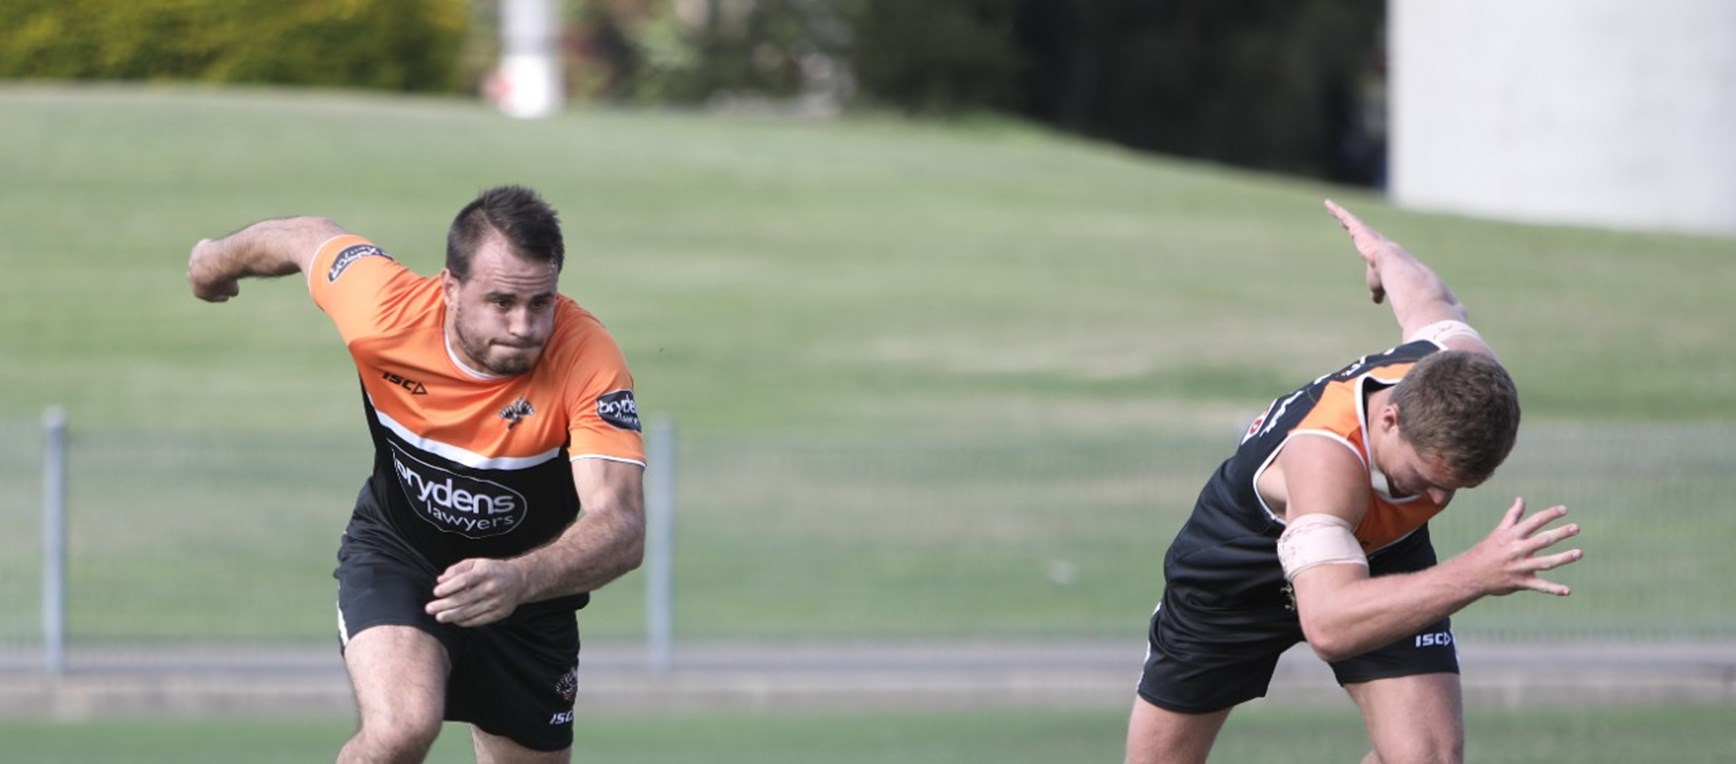 Gallery: Monday pre-season field session